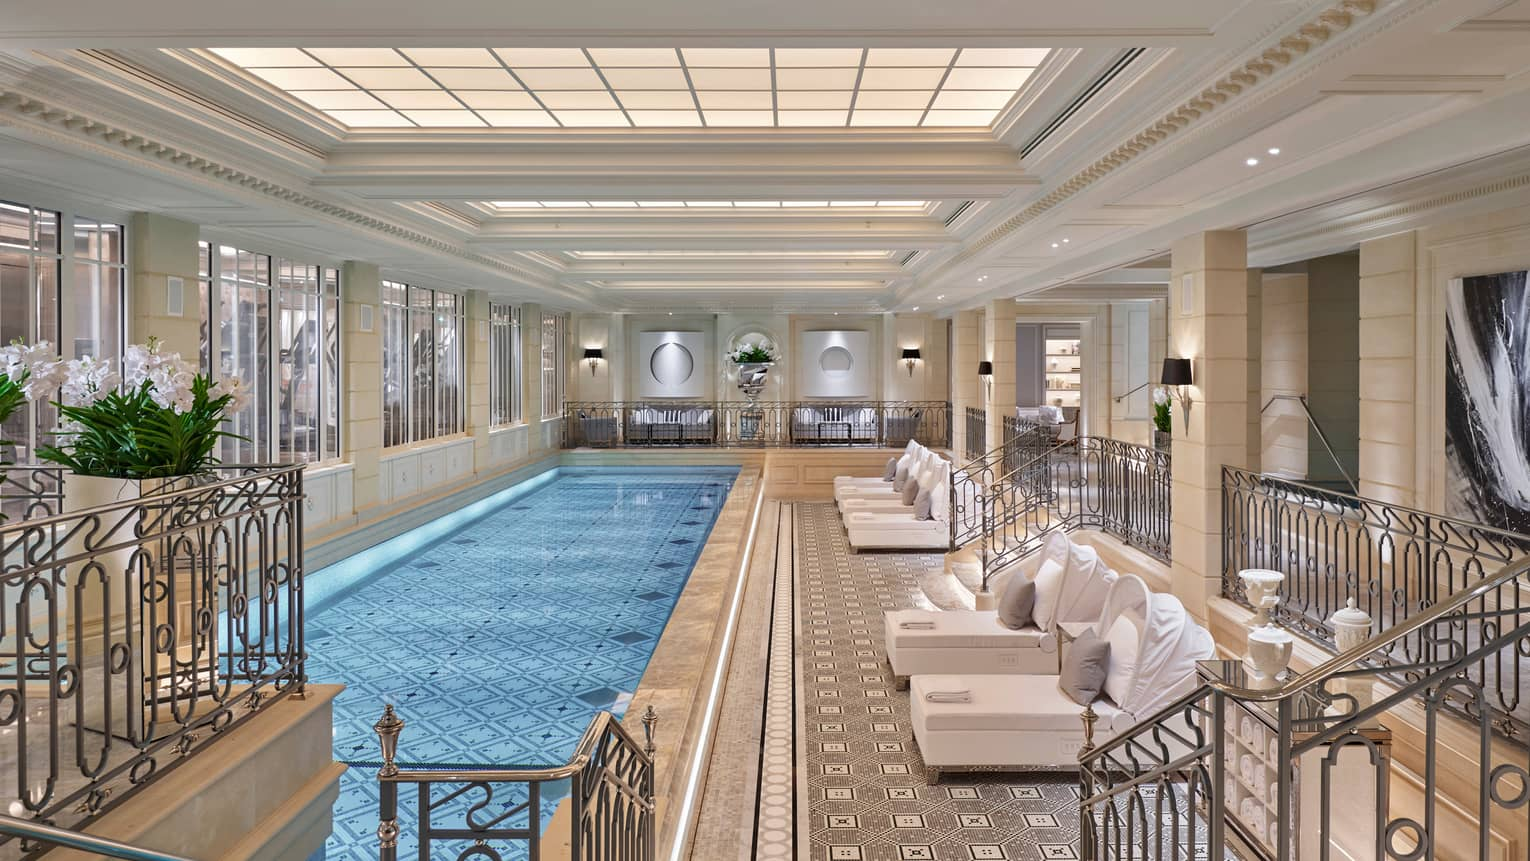 Long, elegant indoor swimming pool lined with plush white patio lounge chairs